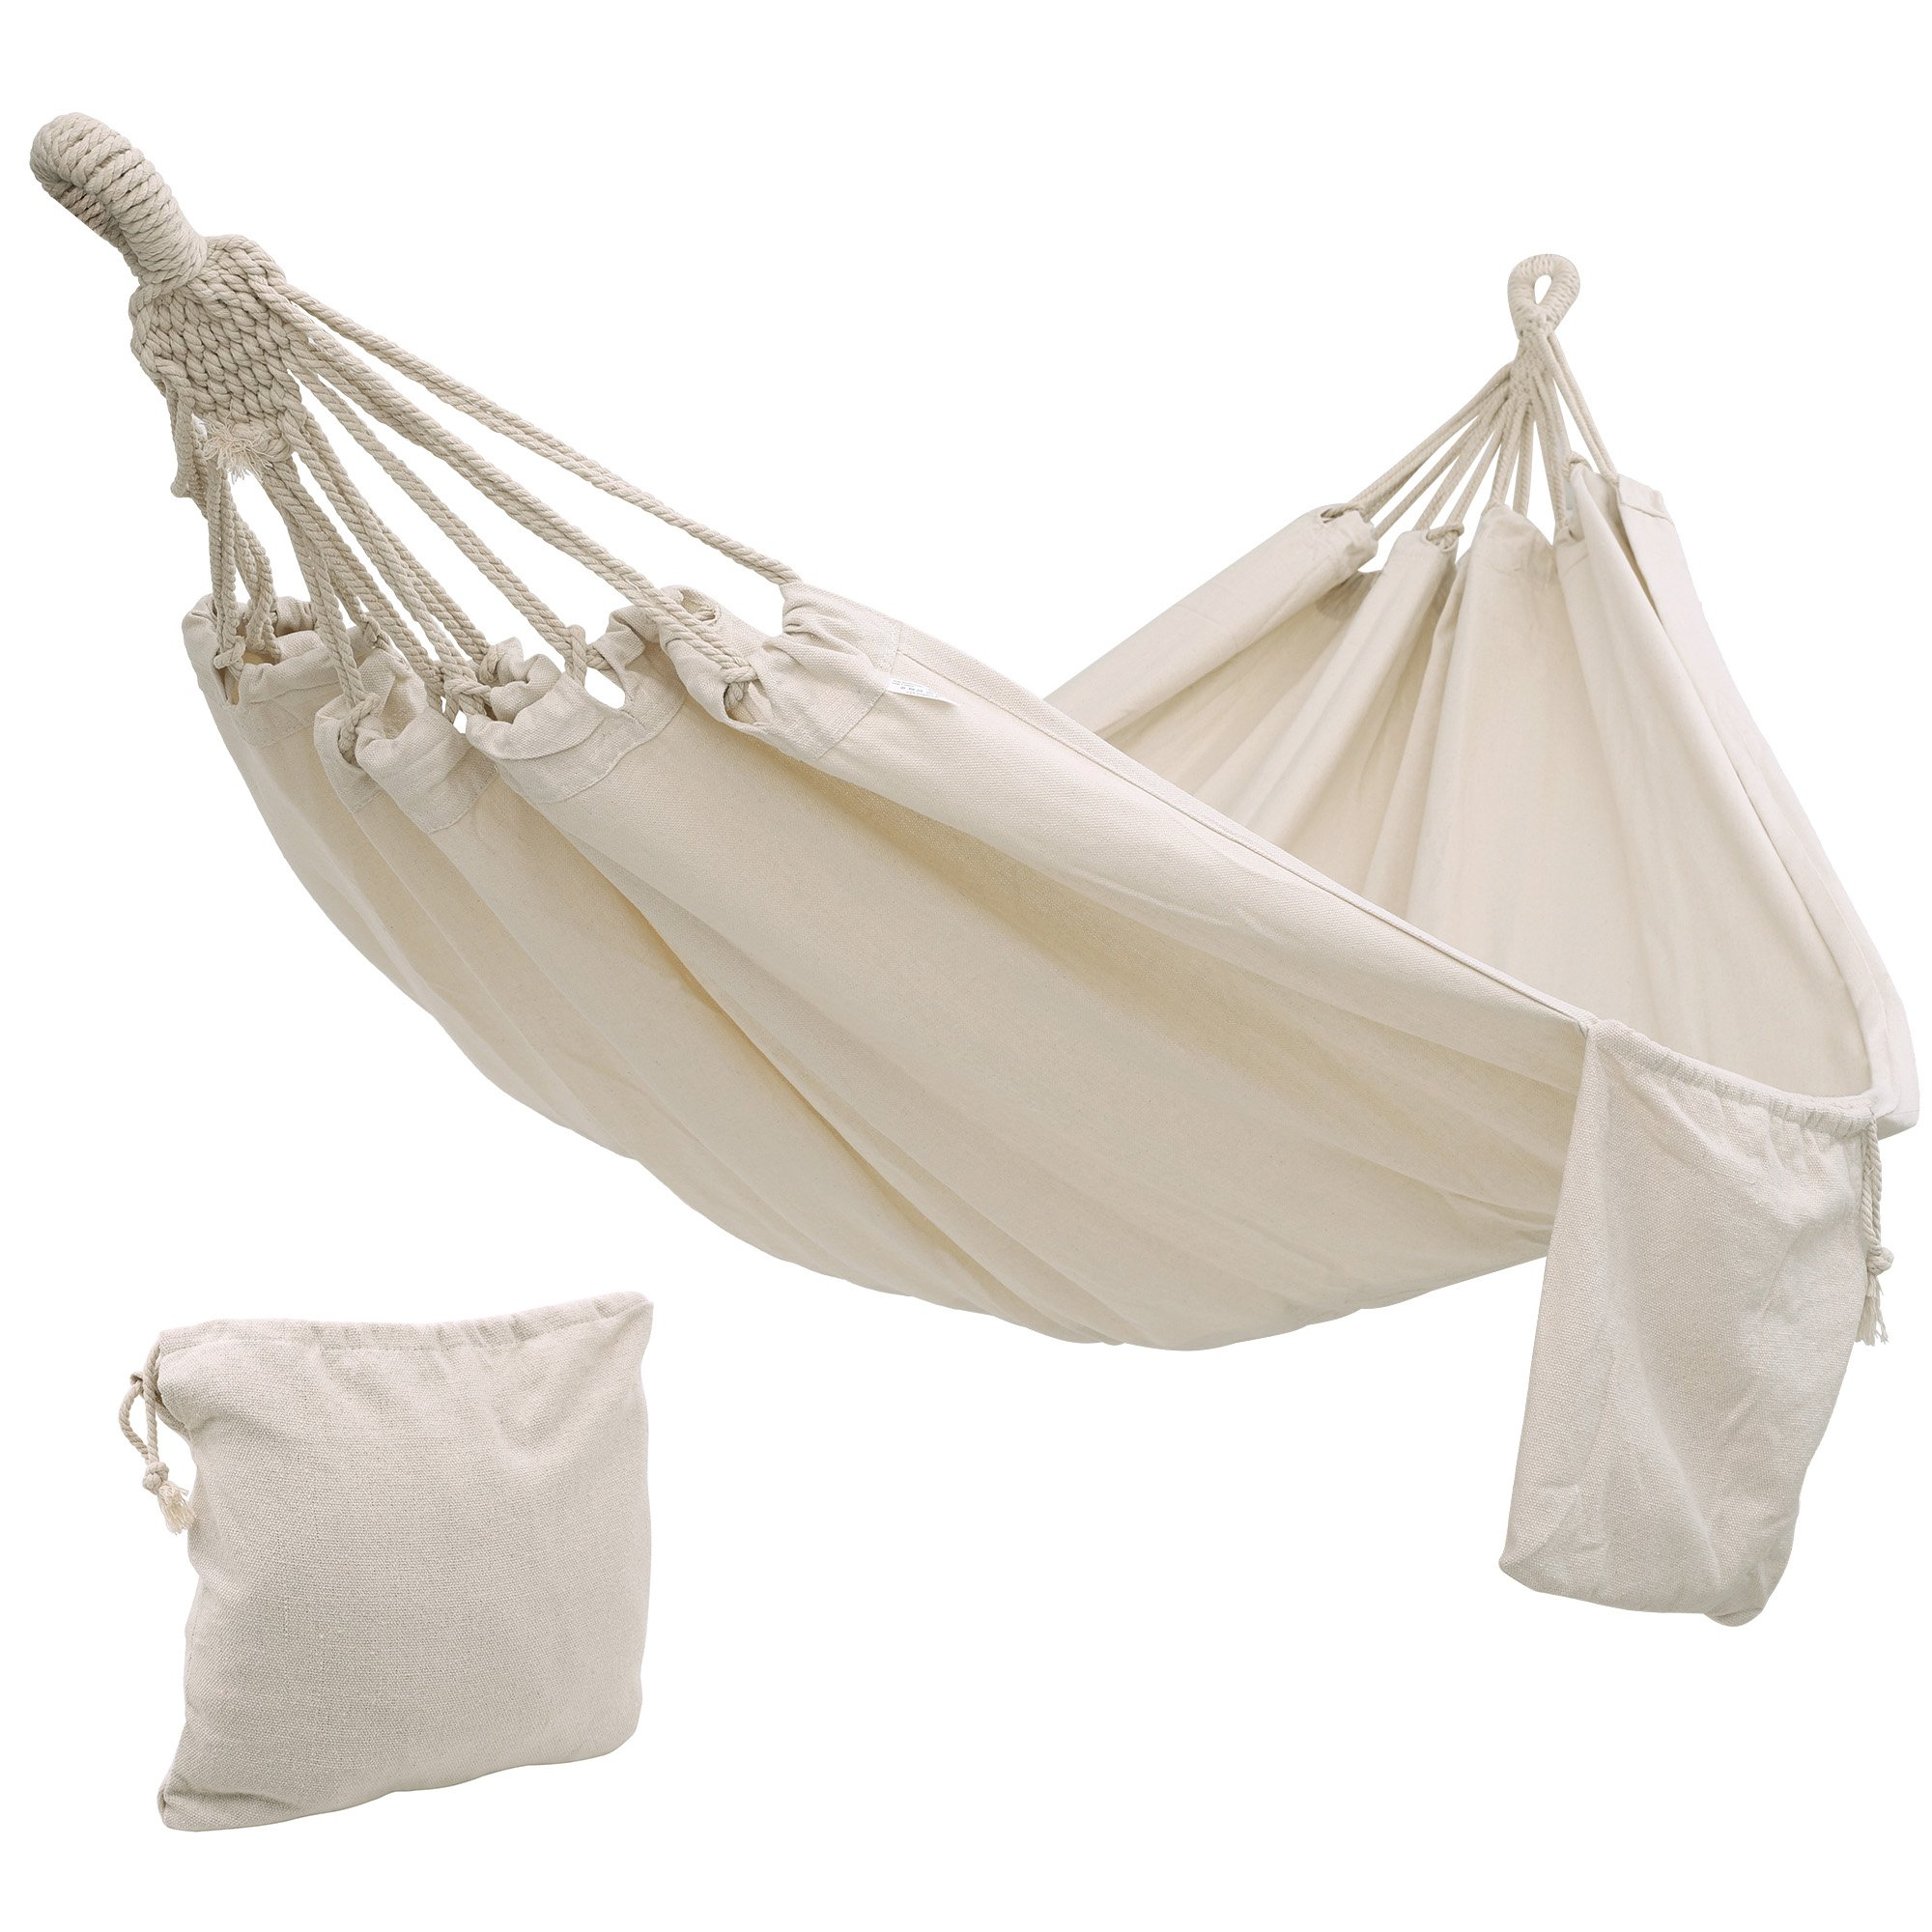 SONGMICS Cotton Hammock Swing Bed for Patio, Porch, Garden or Backyard Lounging - Heavy-Duty, Lightweight and Portable - Indoor & Outdoor - Natural White UGDC15M by SONGMICS